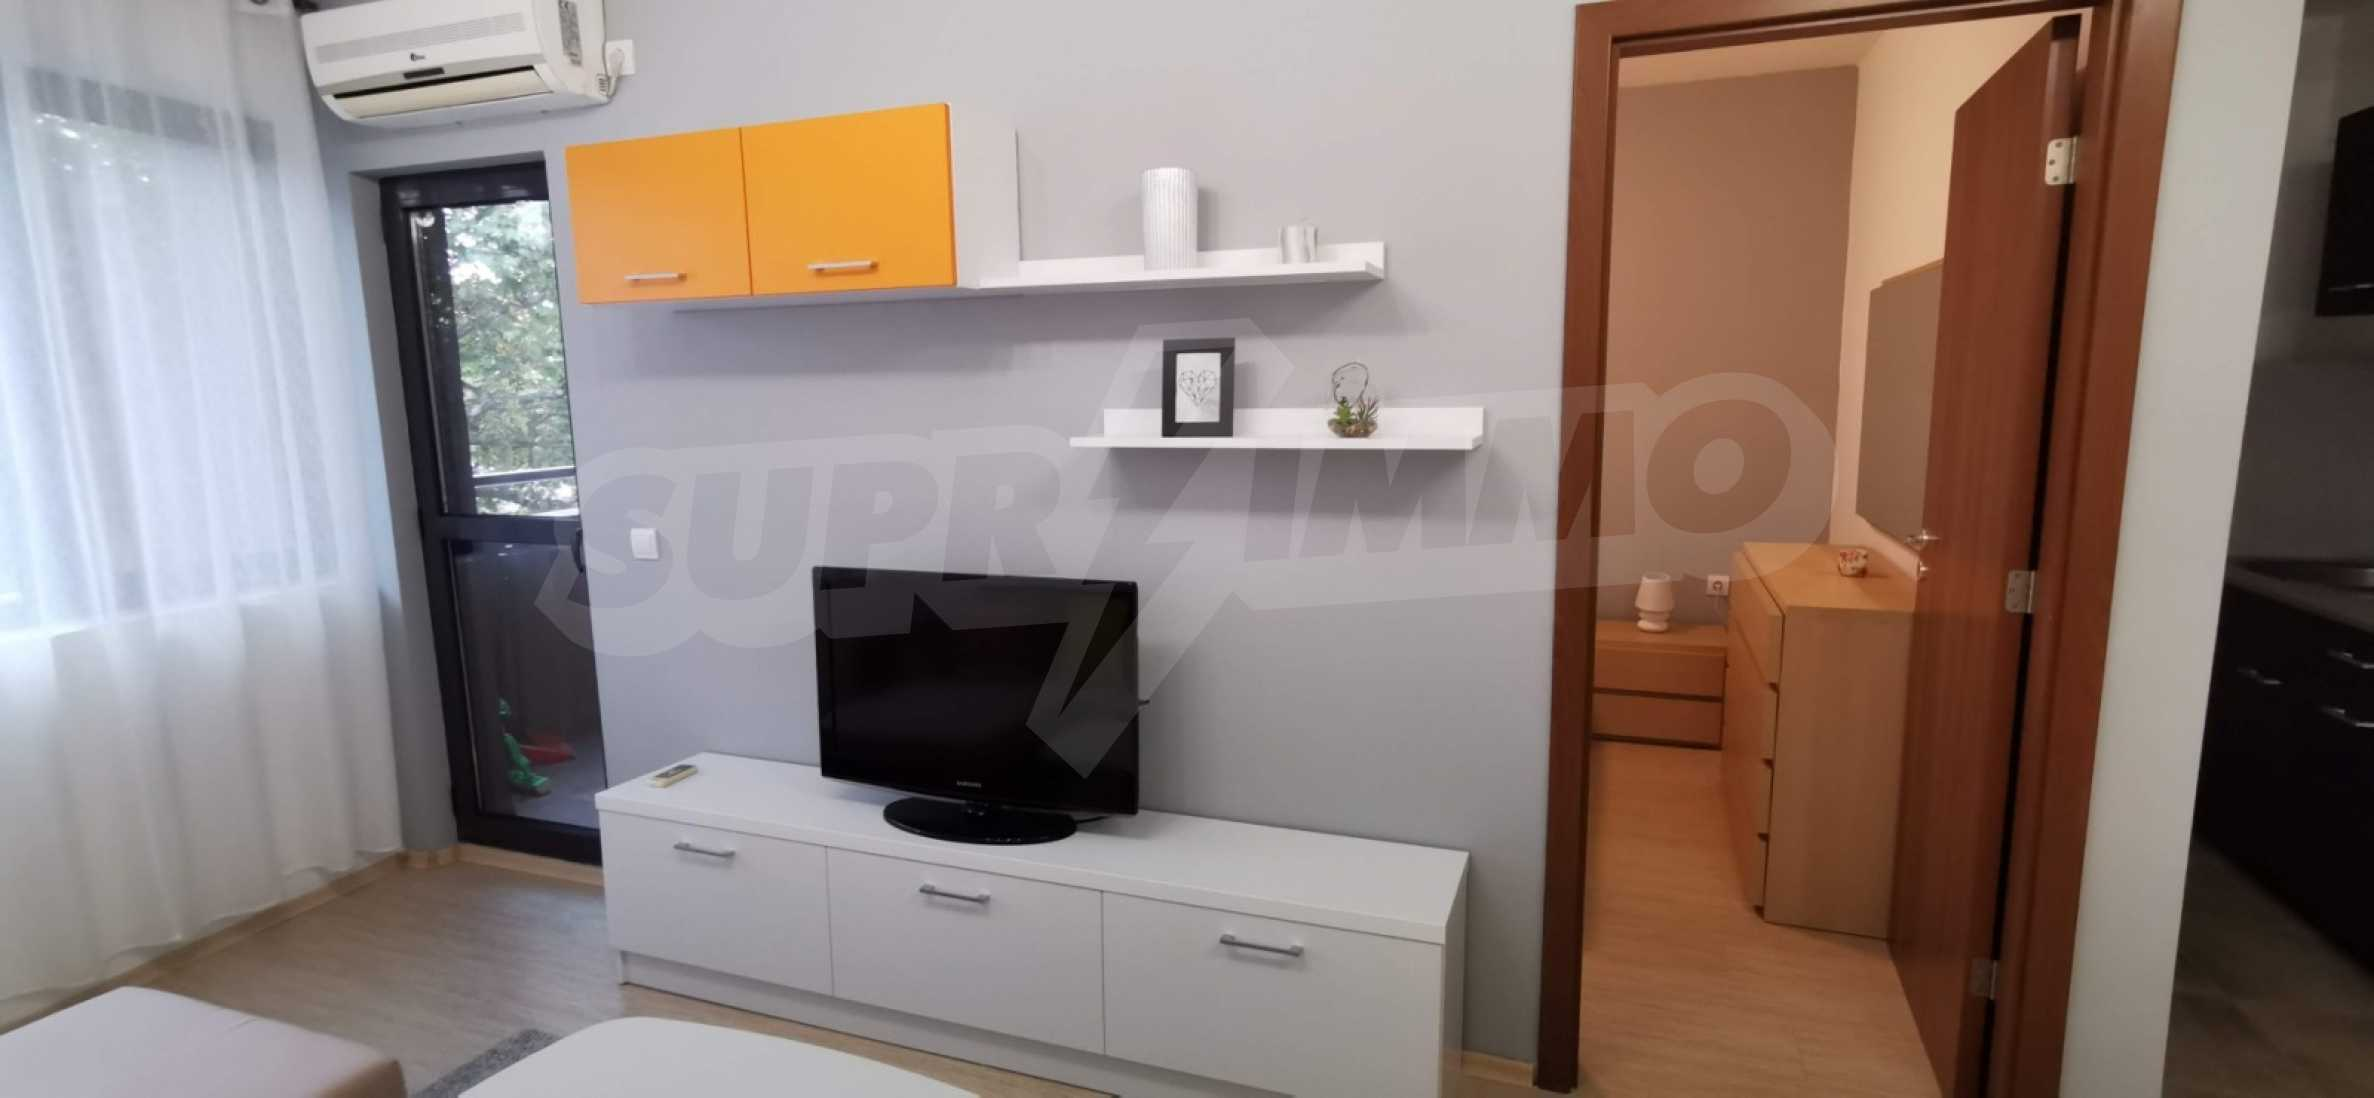 One bedroom apartment in a new residential building near the HMI, in Plovdiv 4